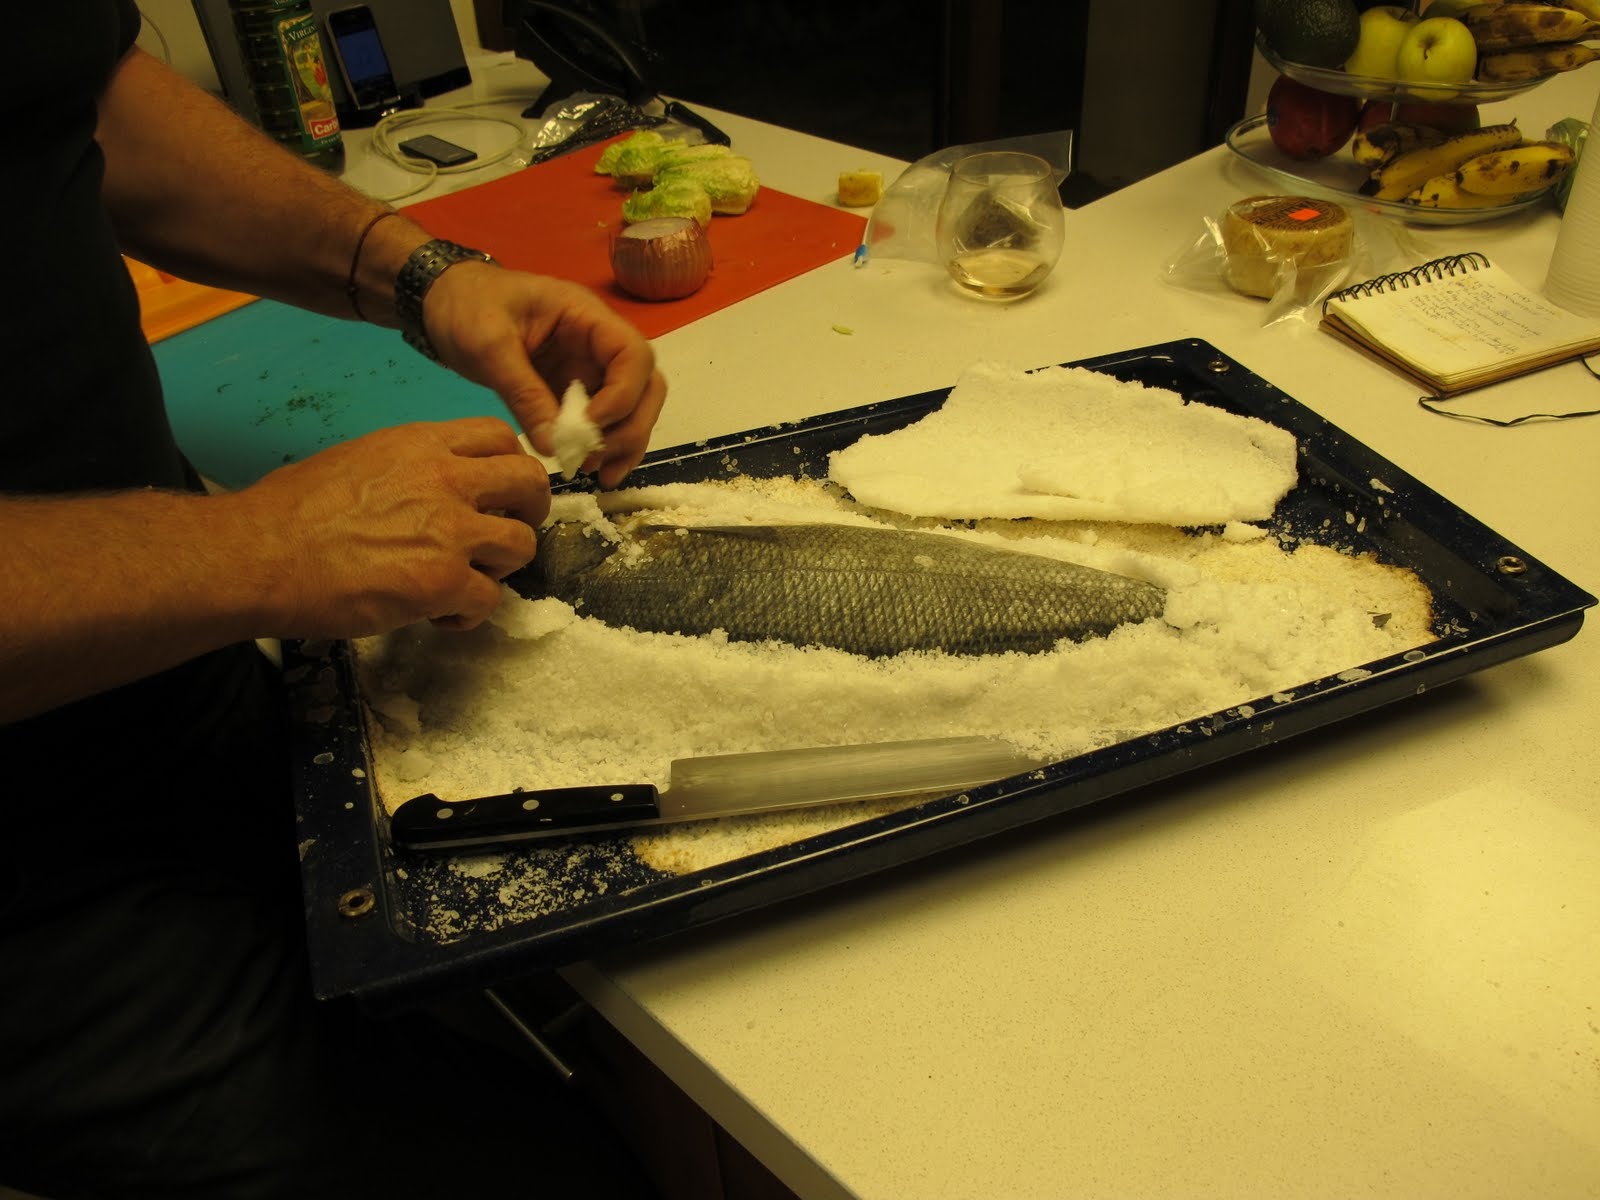 Recipes to cure cancer: Salt Baked Whole Sea Bass with